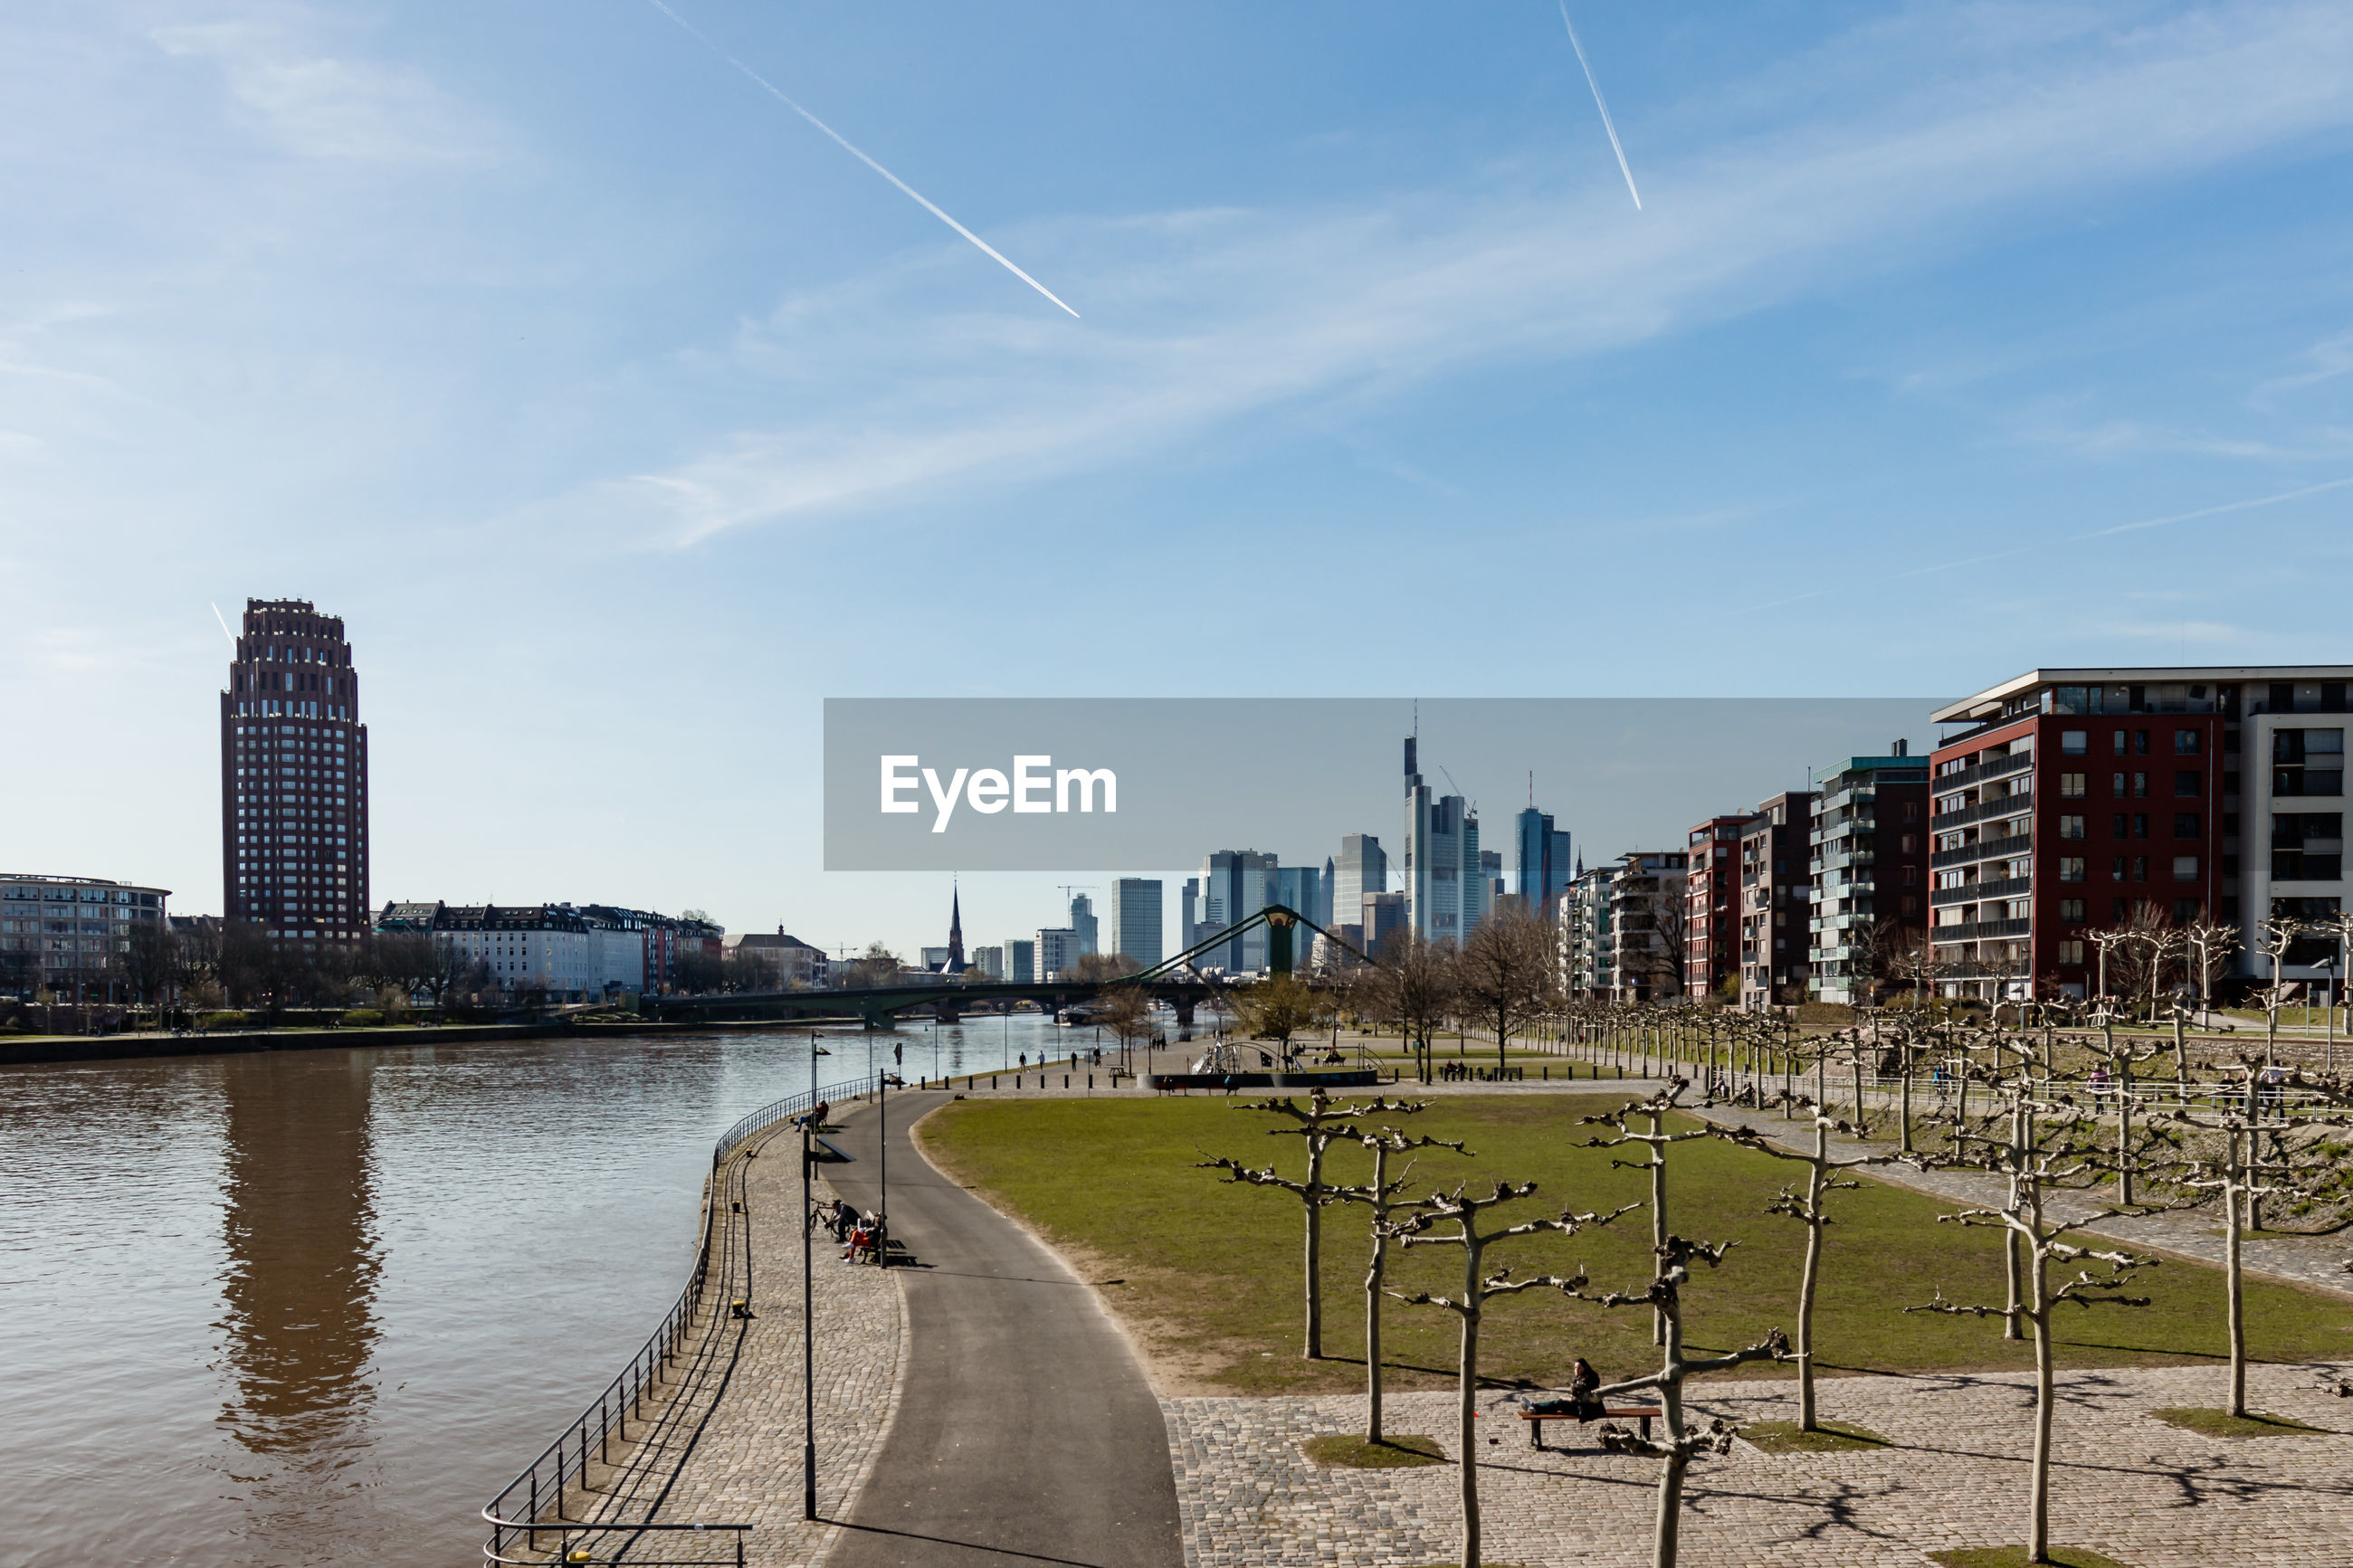 PANORAMIC VIEW OF RIVER AND CITY BUILDINGS AGAINST SKY